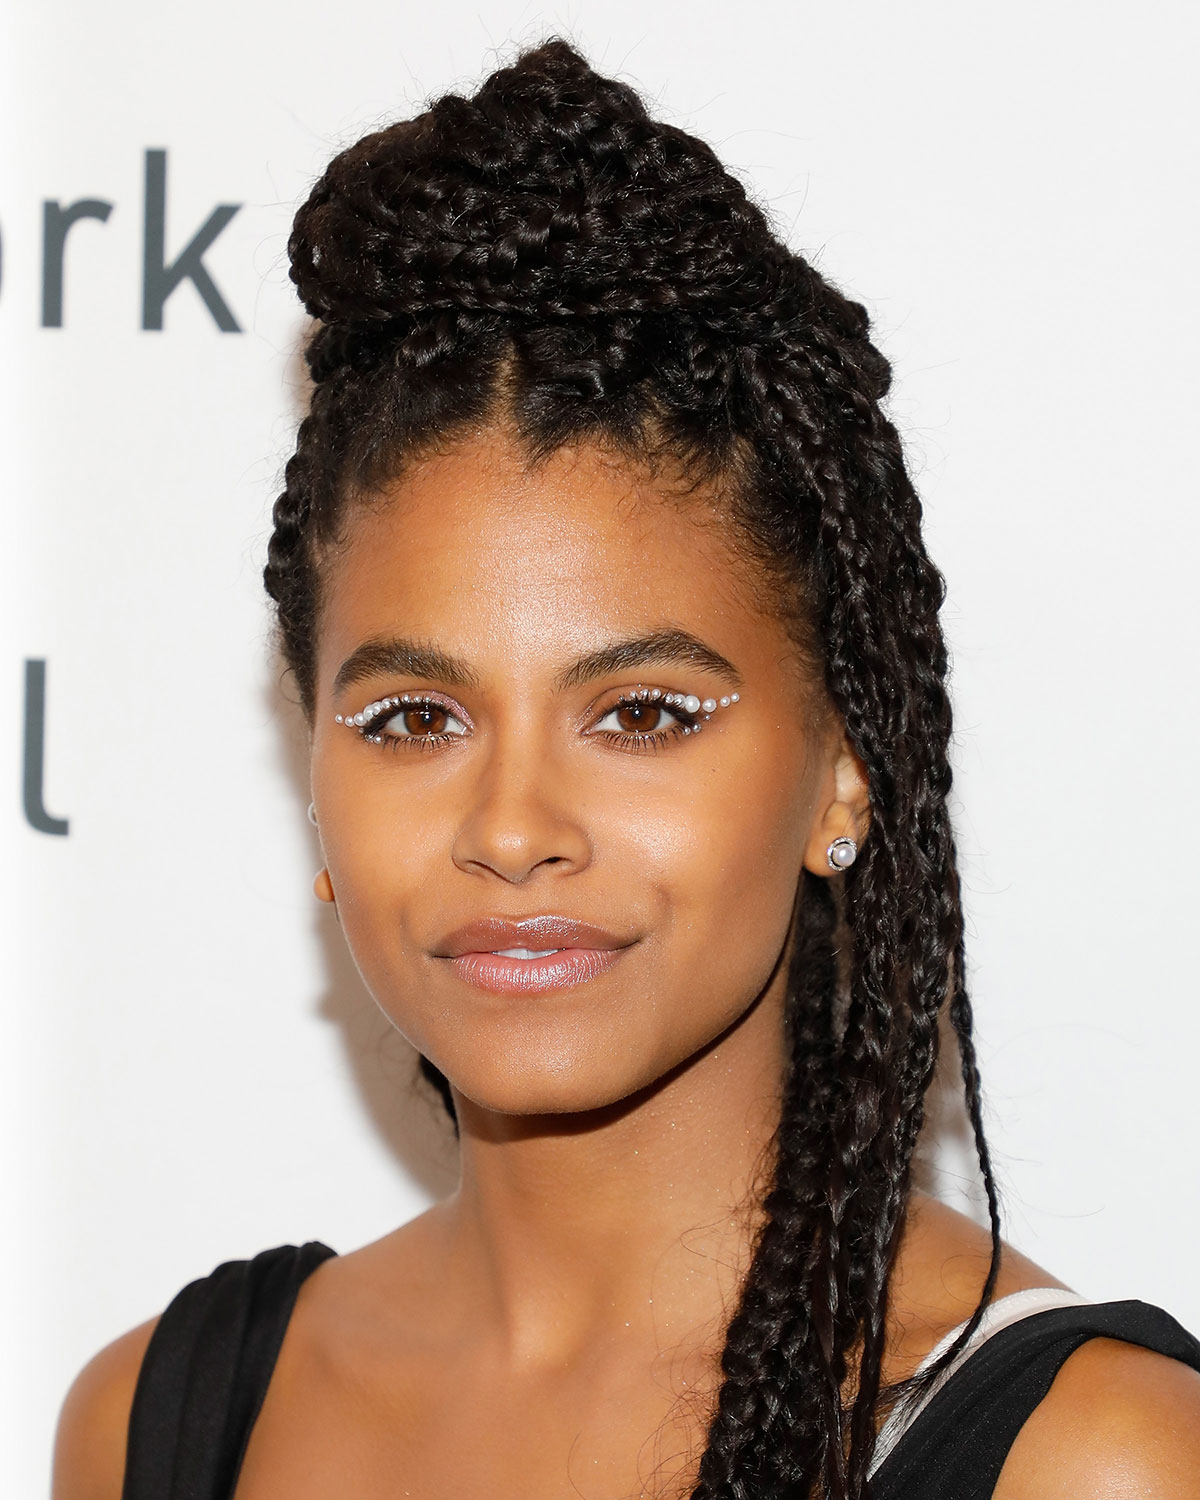 Spring Makeup Trends - Zazie Beetz